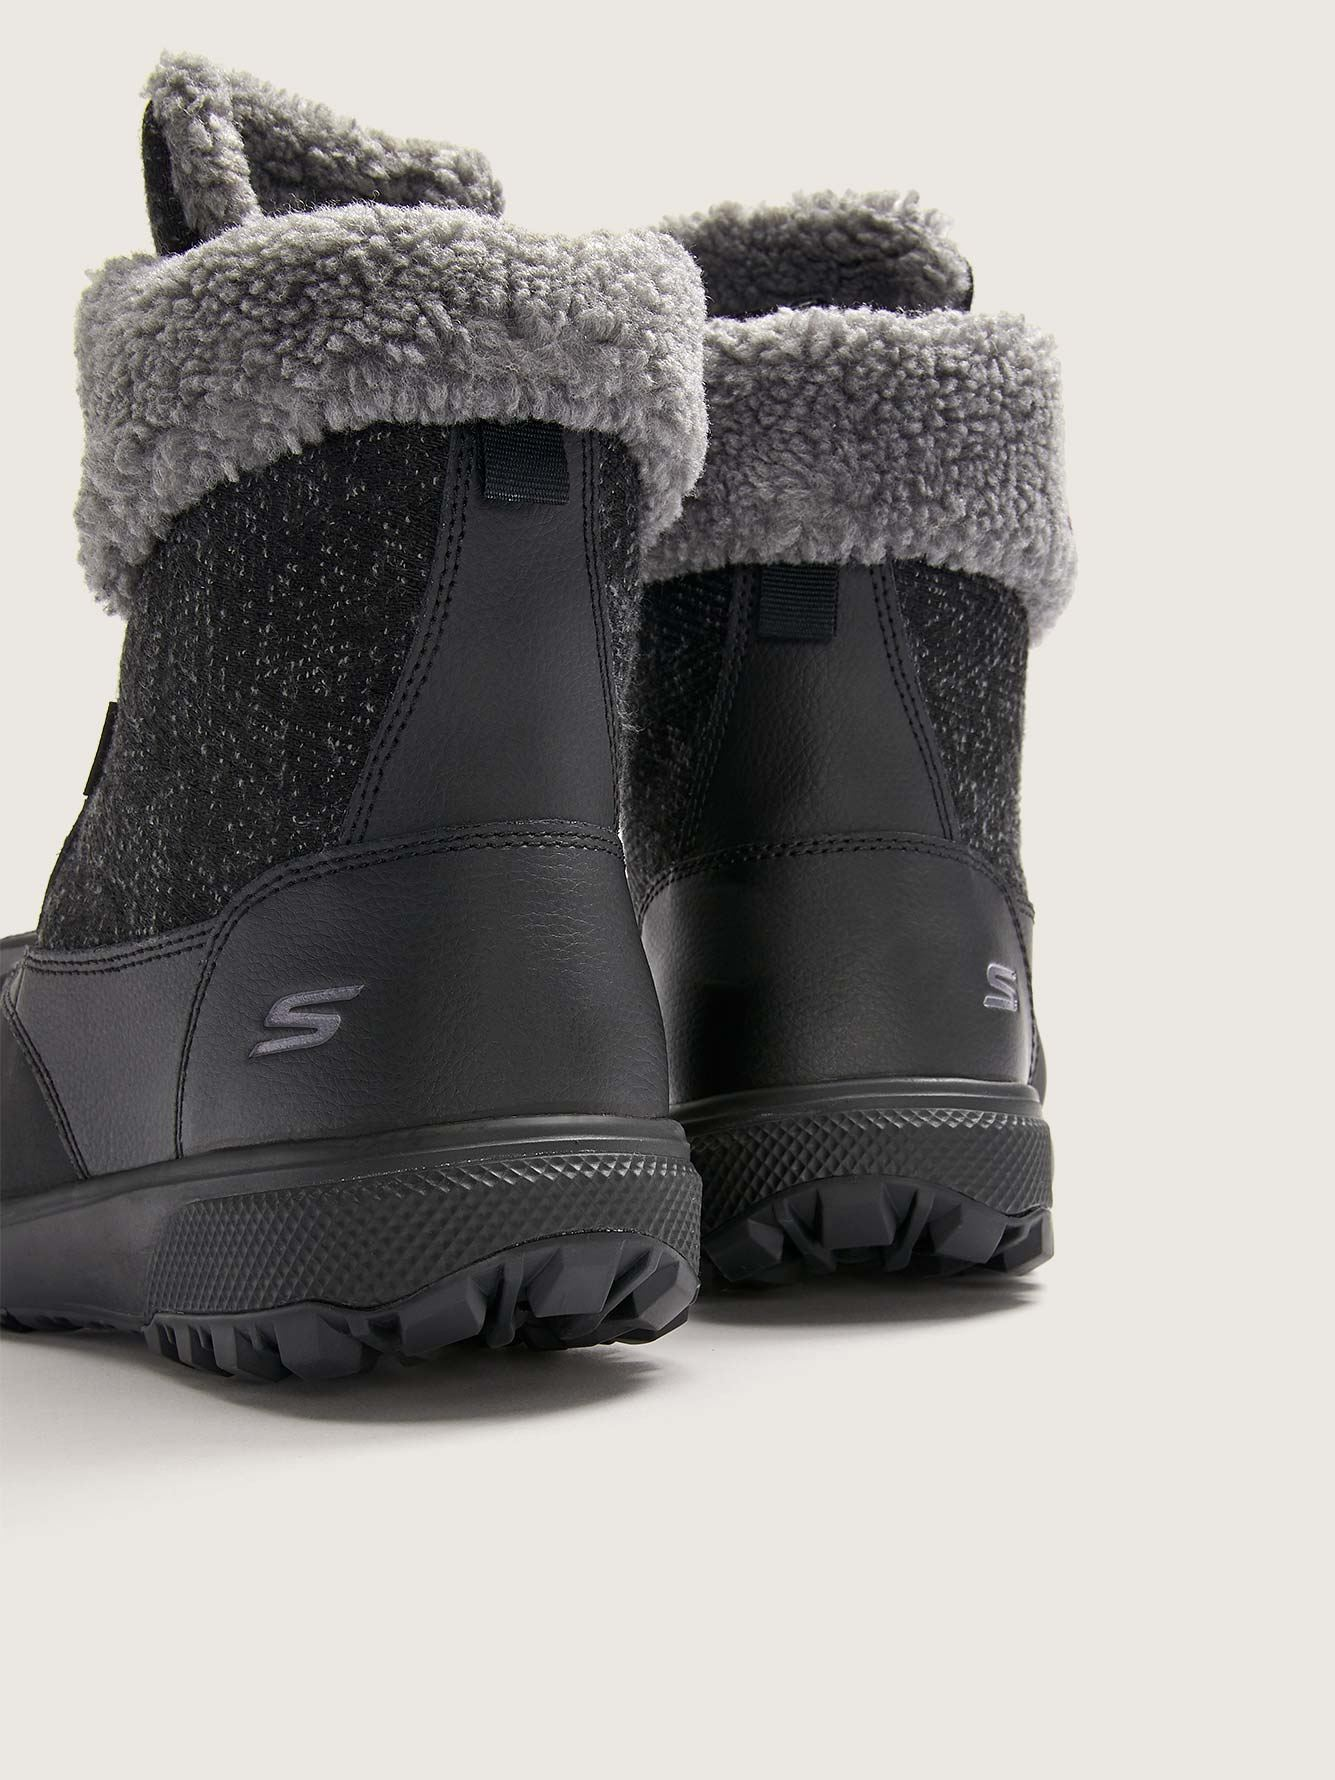 Wide Mid-Calf Boot with Faux Fur Lining - Skechers